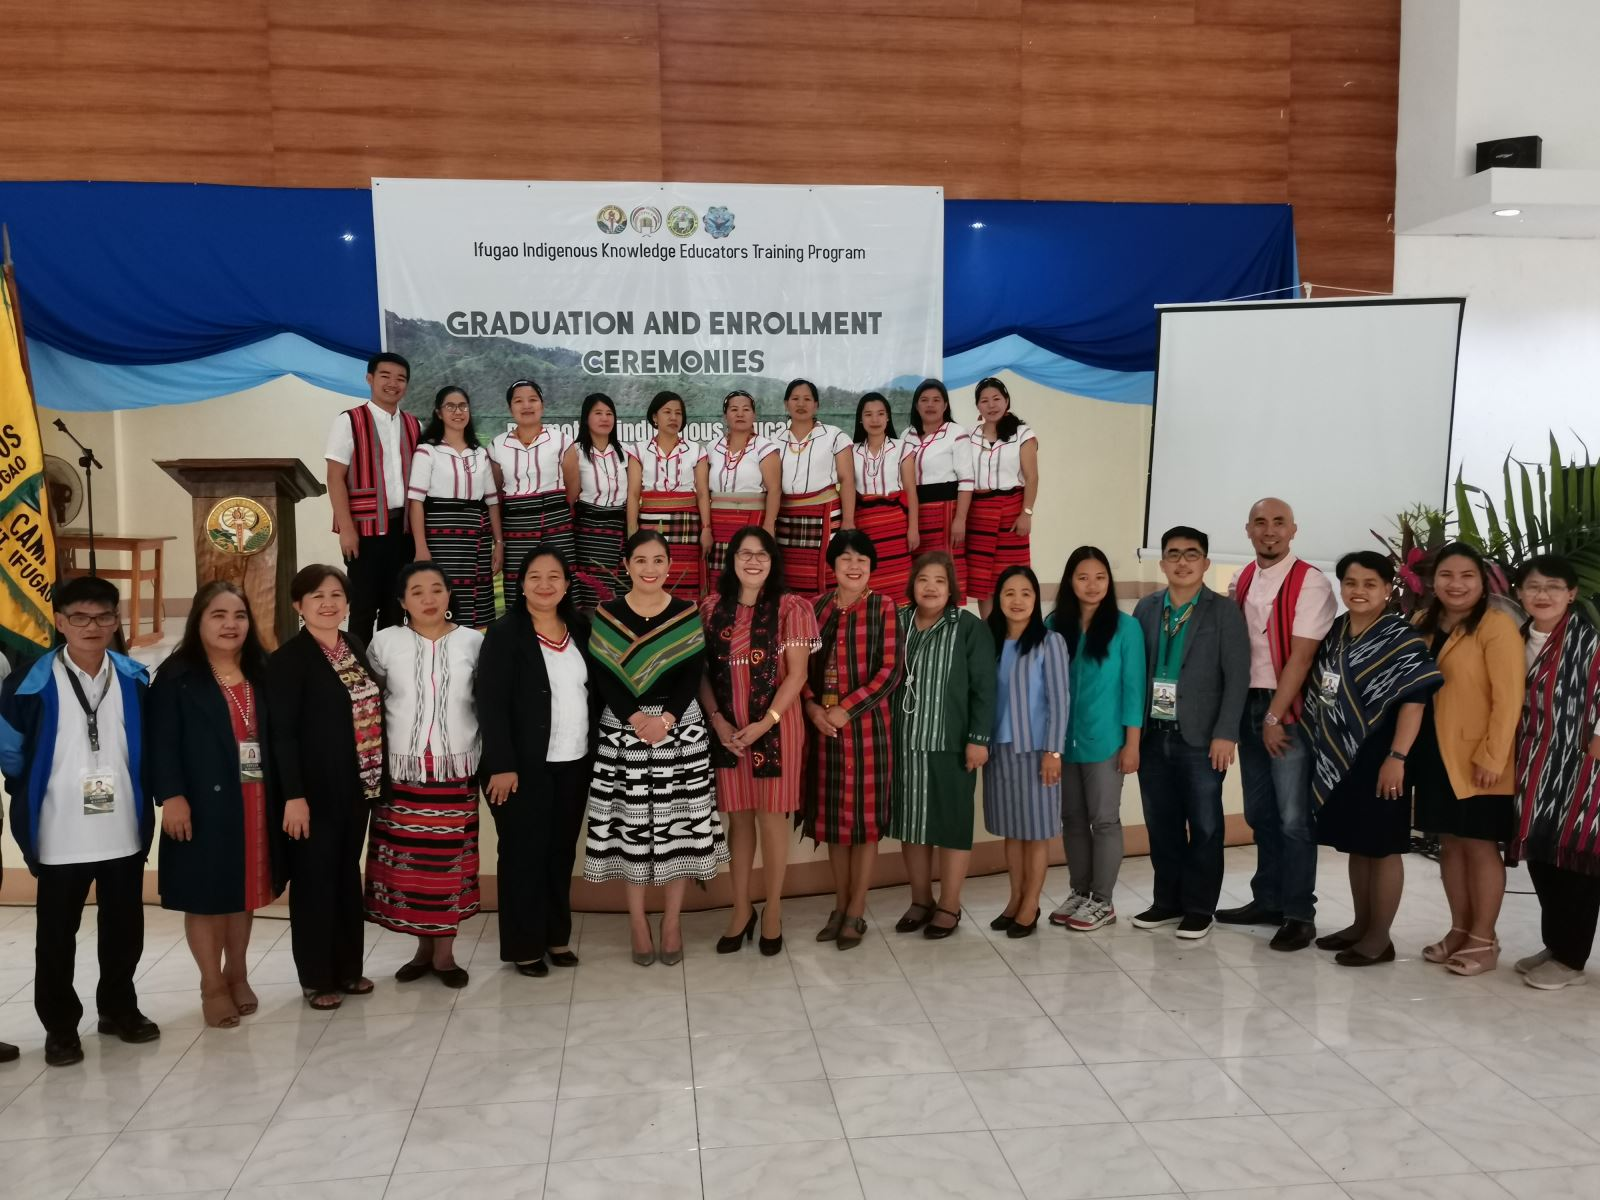 Group photo of the 10 graduating teachers and the participants of the 1st Graduation Ceremony of  _the Ifugao Indigenous Knowledge Educators Training Program